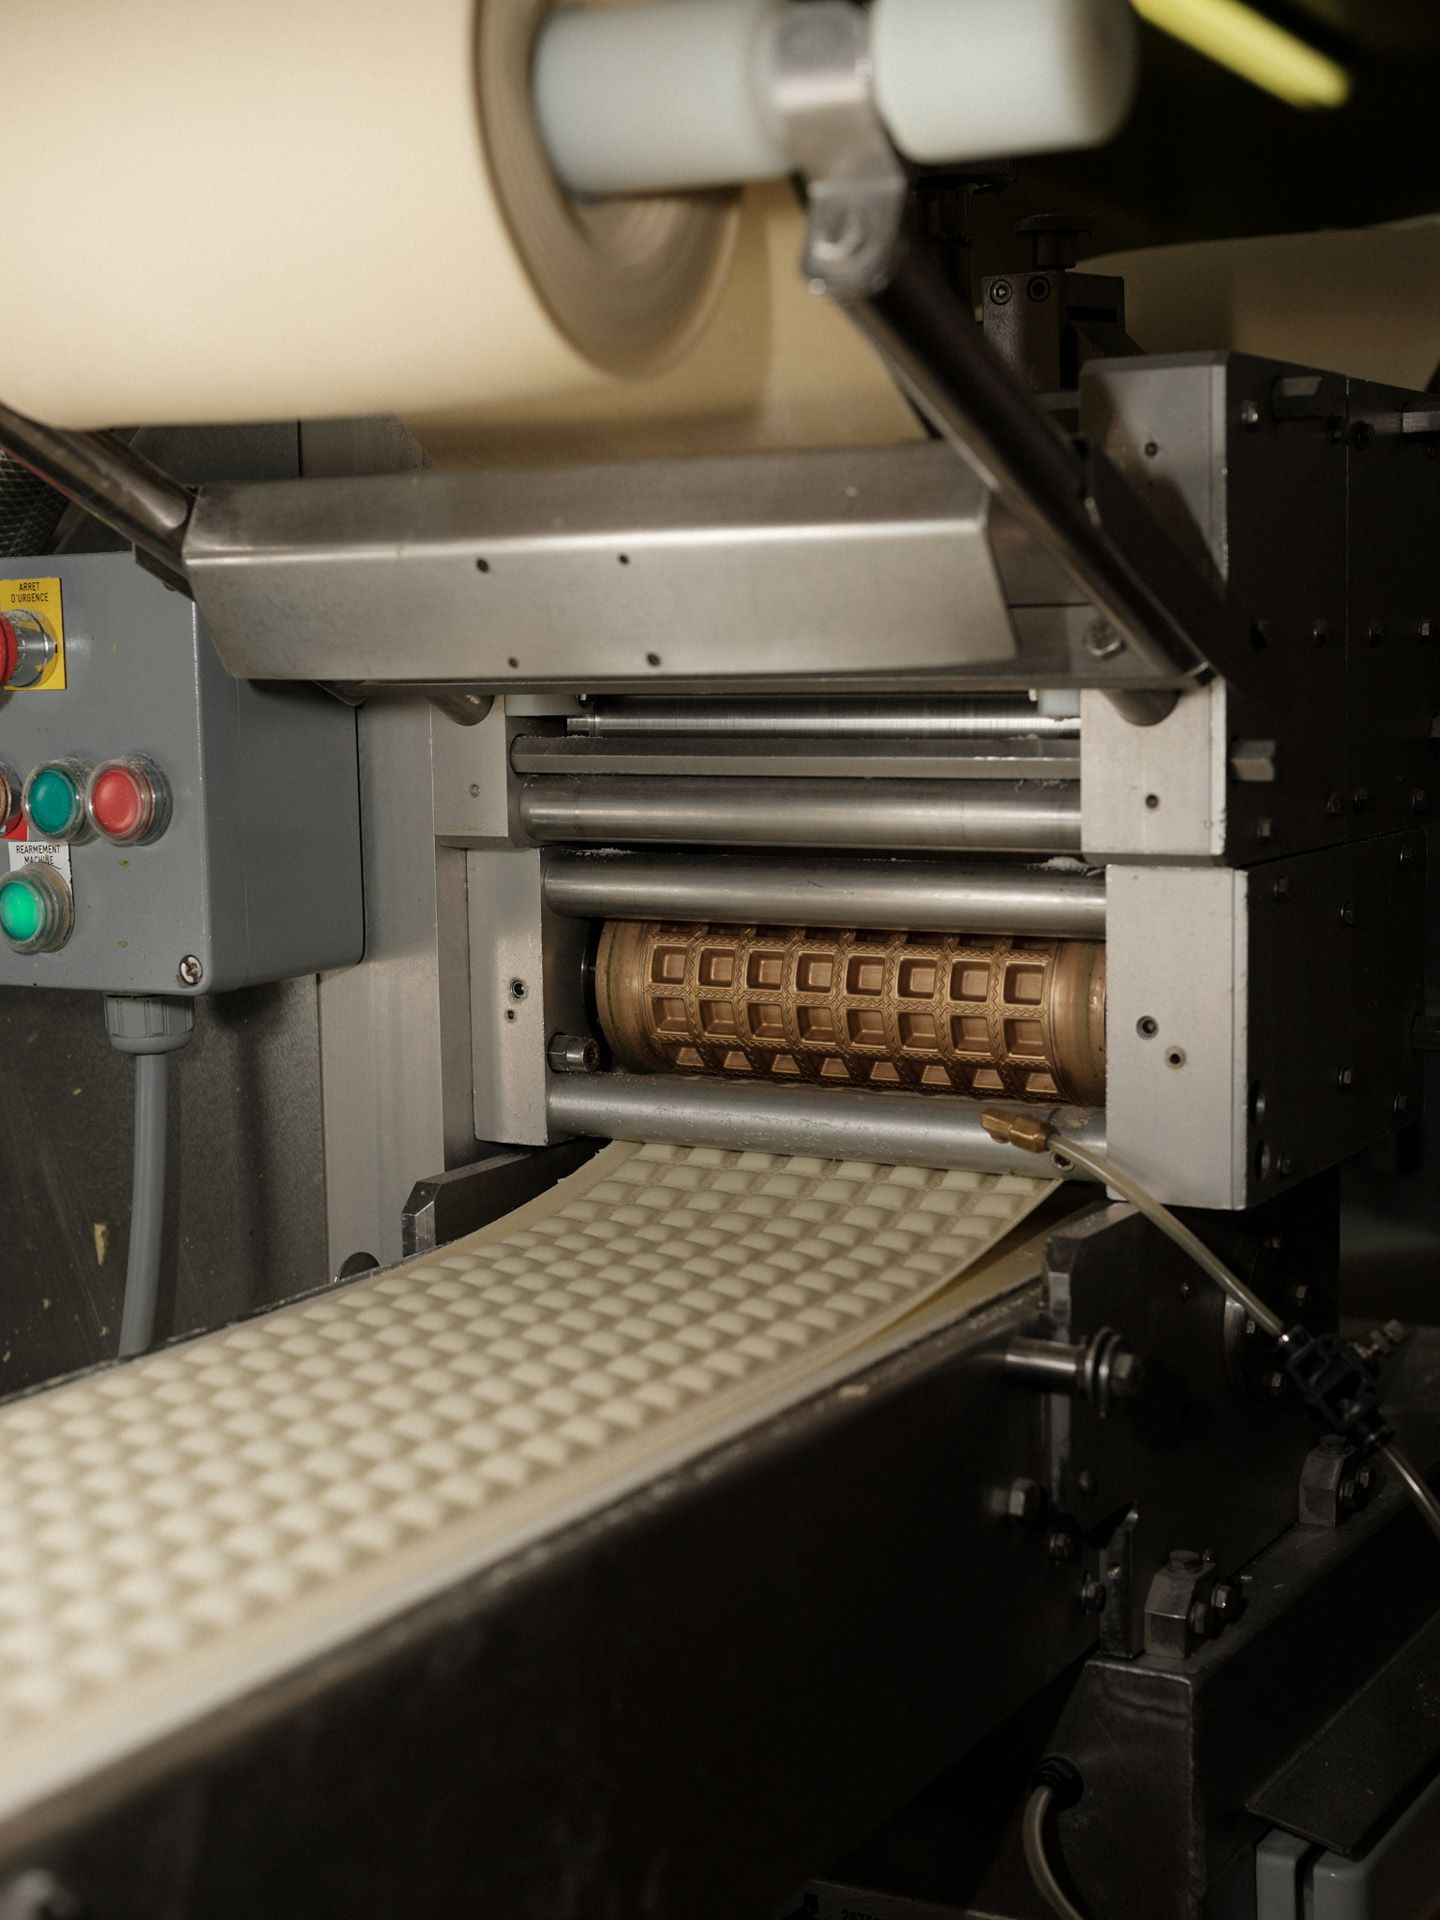 machine making raviolis by Alexi Hobbs in Auvergne for Reflets de France